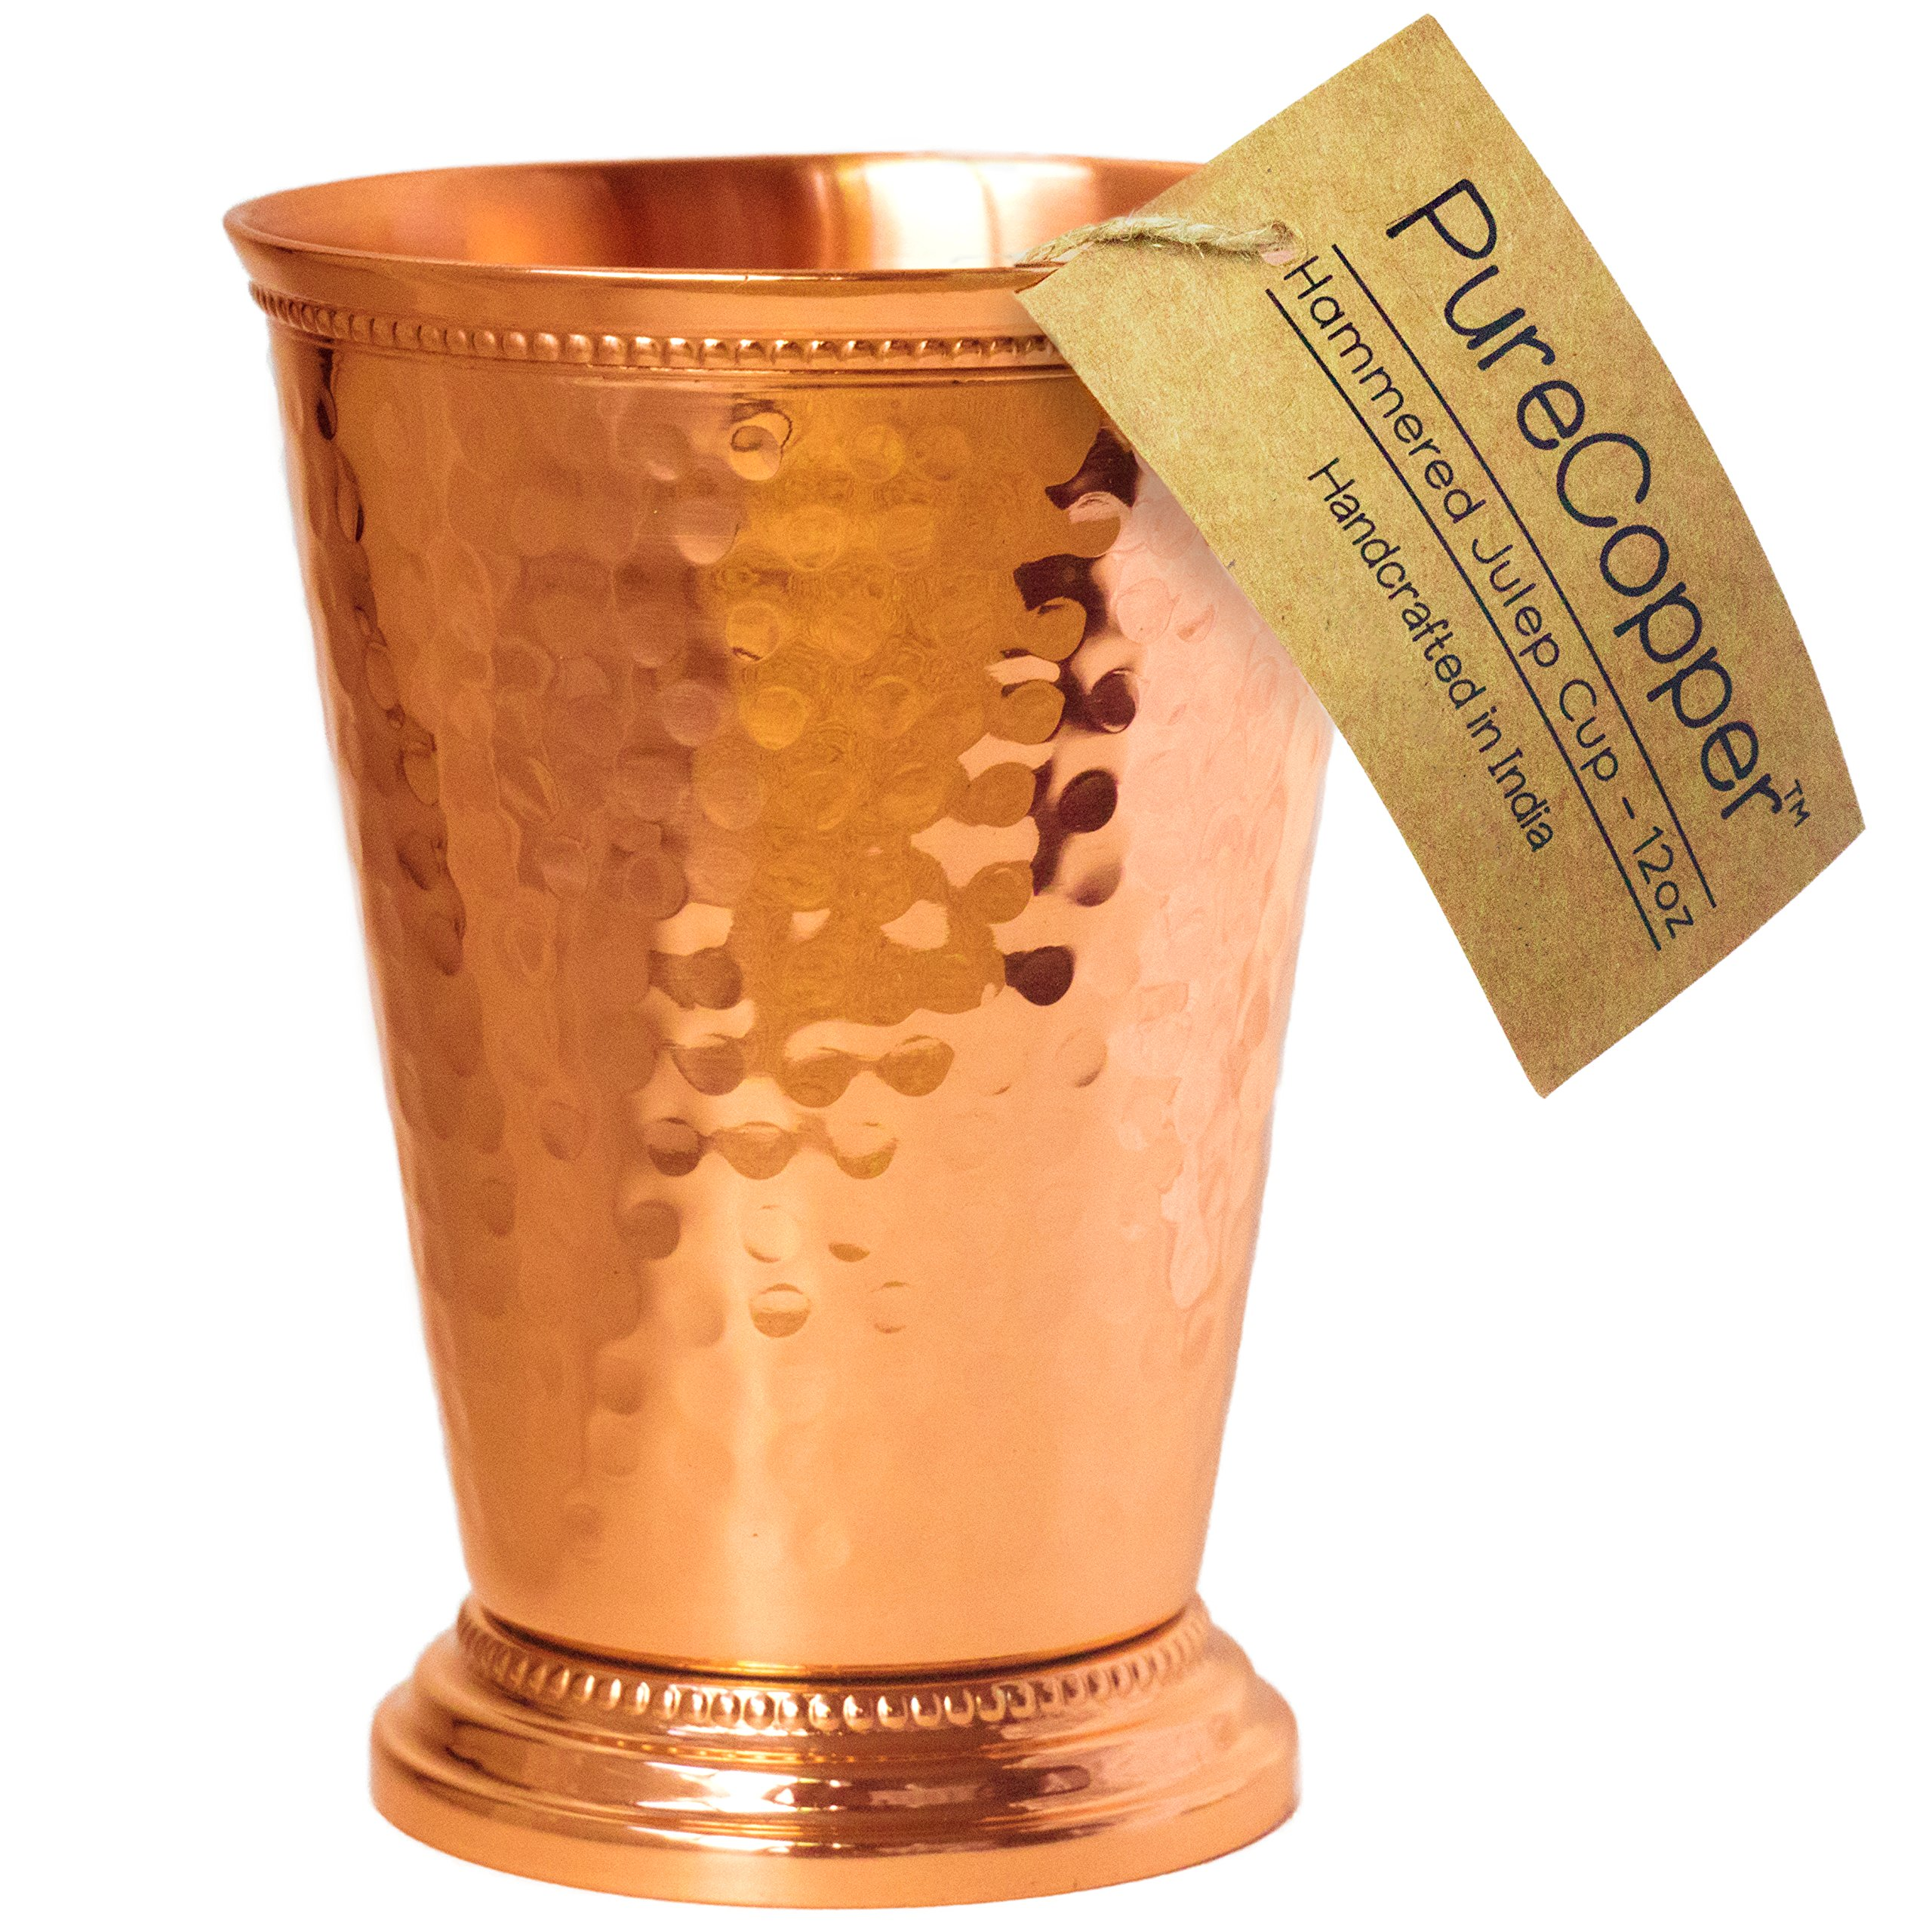 Mint Julep Cup - 100% Copper, Hammered by Hand - 4.5'' Height 12 Ounce (Hammered Copper, 12oz) by PureCopper